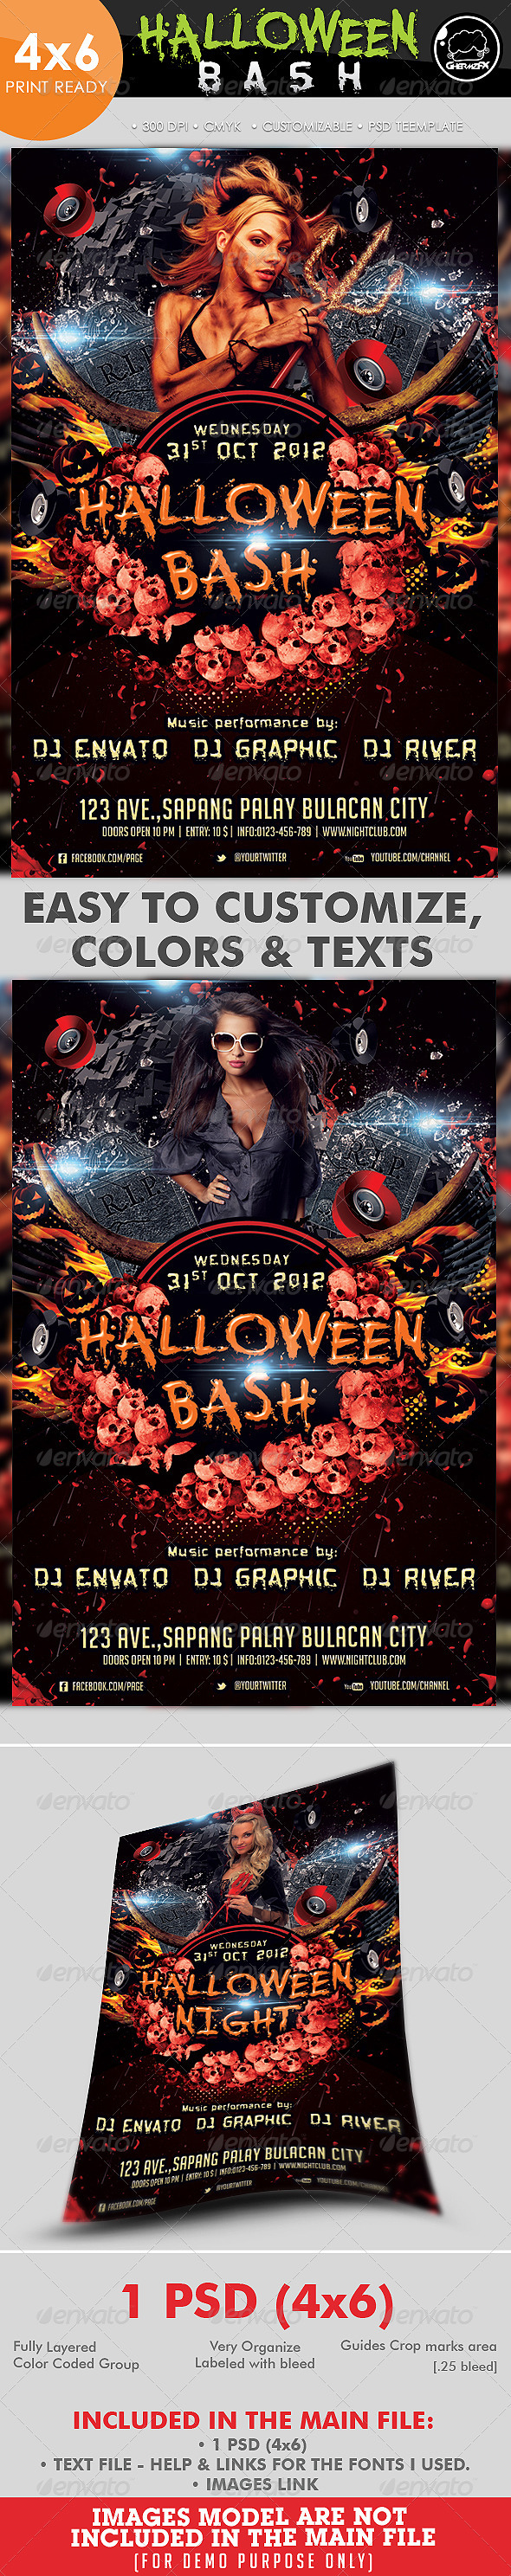 Halloween Bash Party Flyer Template - Clubs & Parties Events